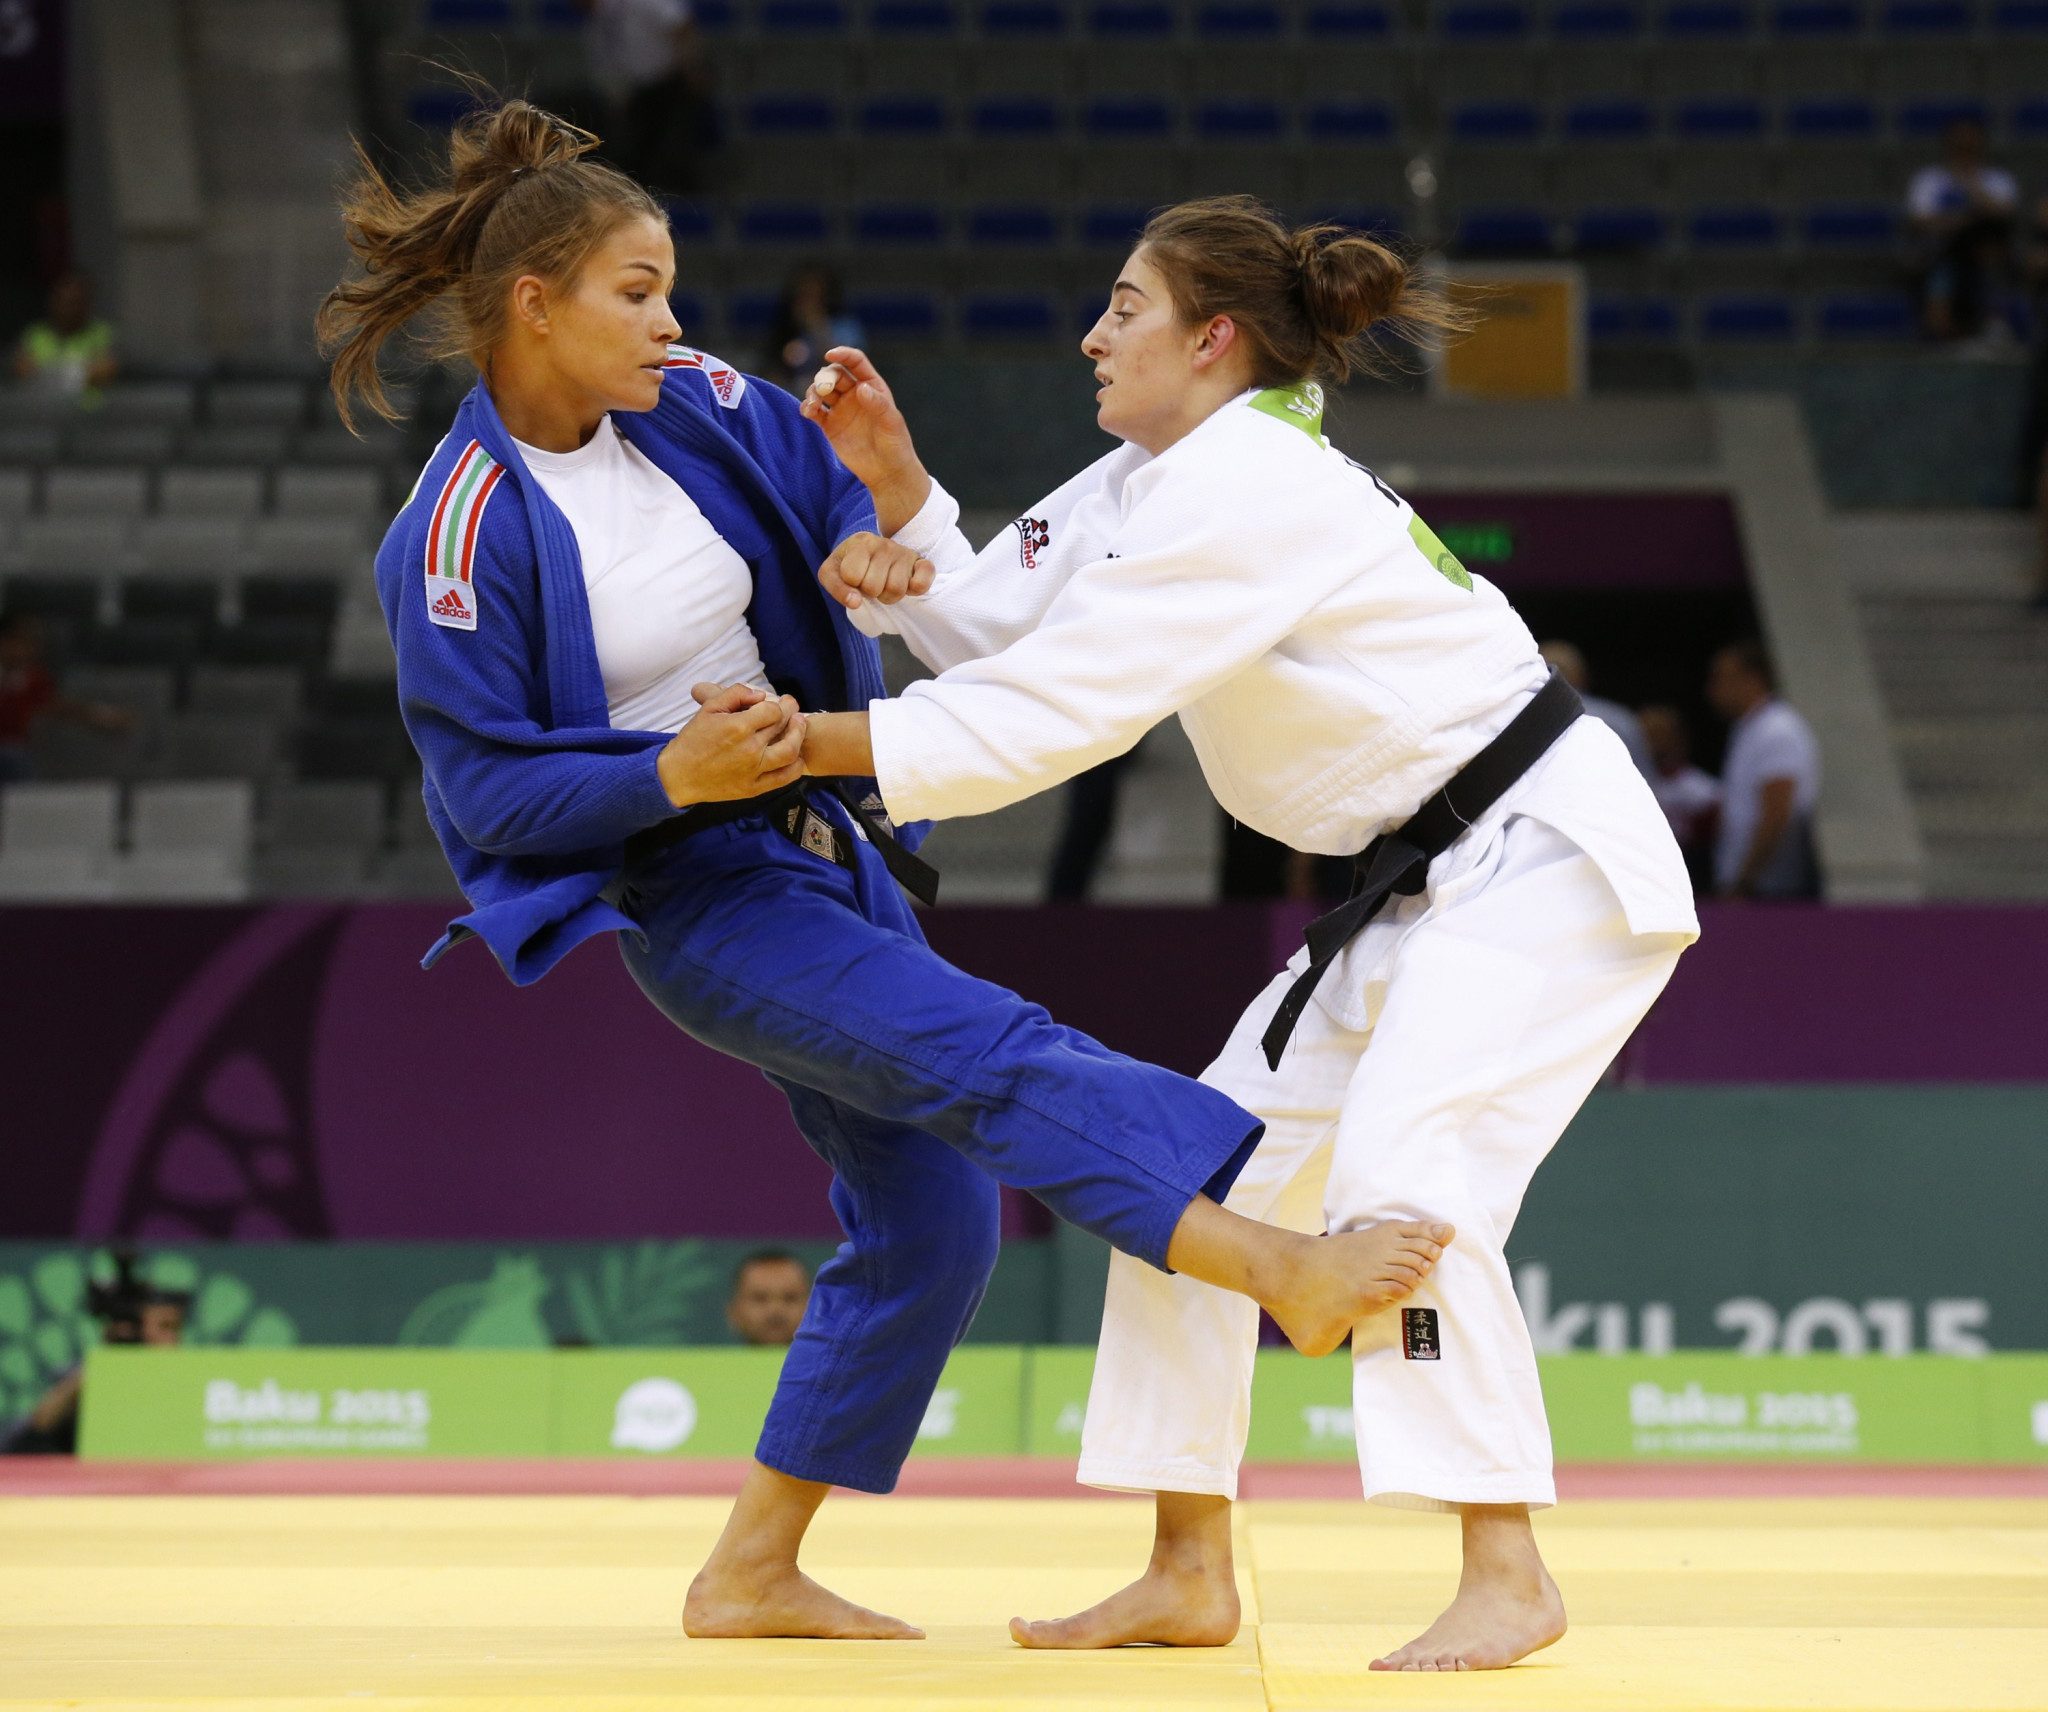 Kosovo's Nora Gjakova, in white, won a European Games silver medal in the under-57kg event at Baku 2015 ©Getty Images